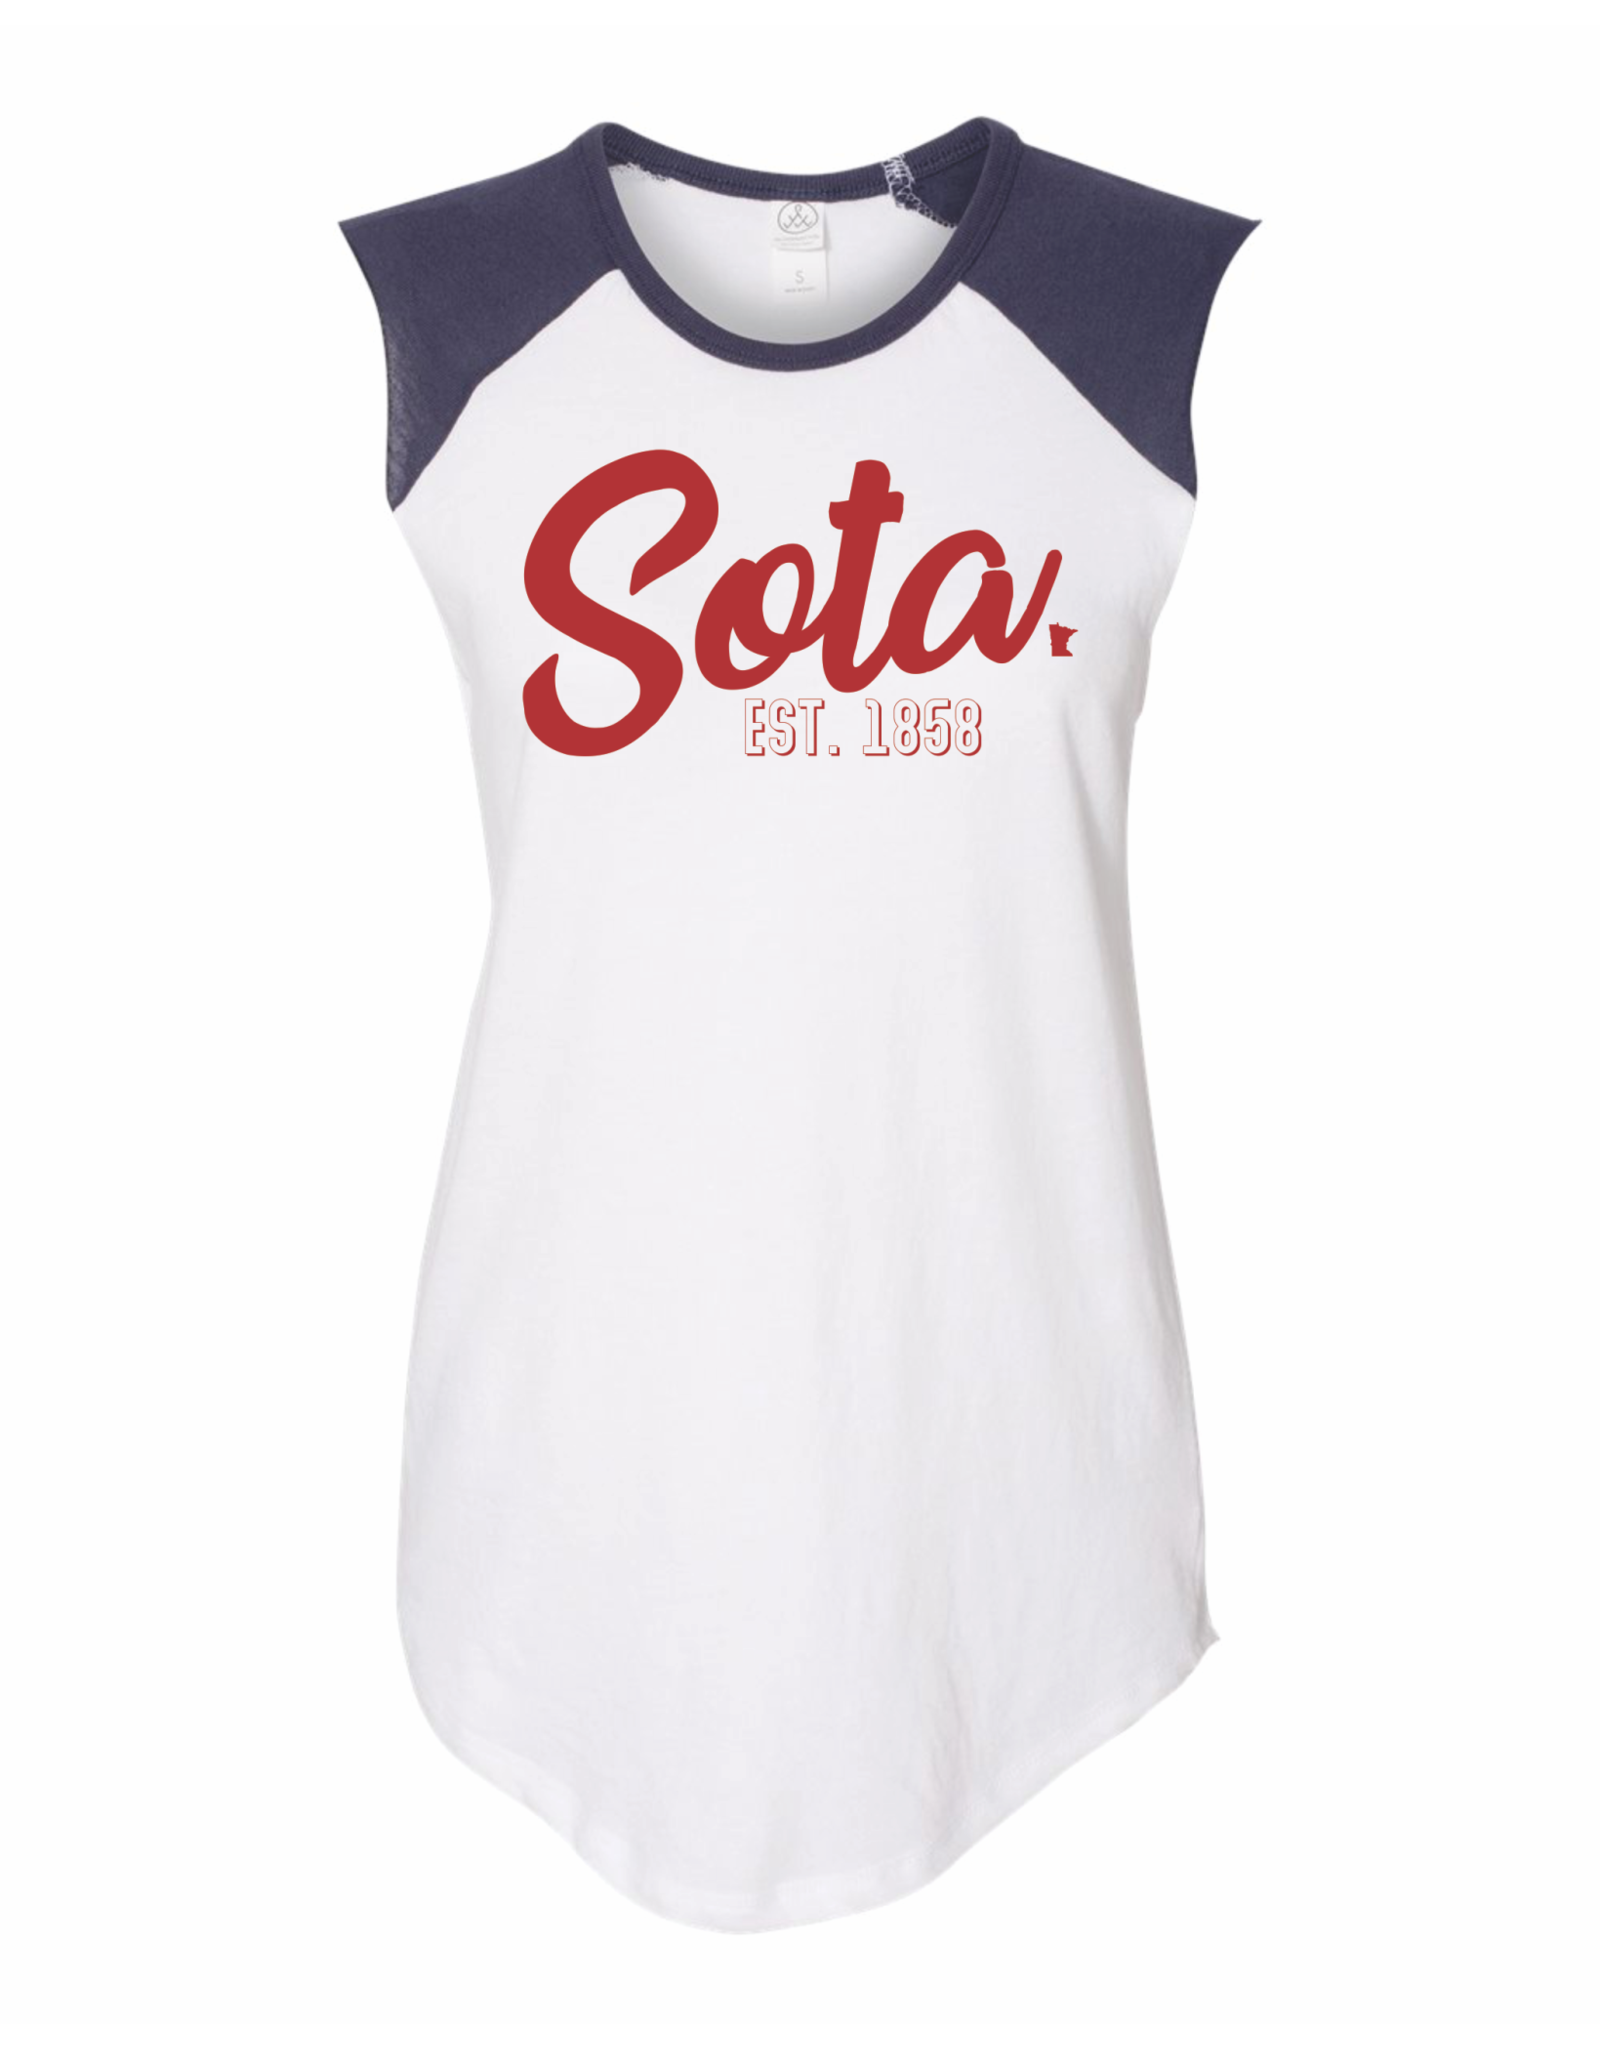 MINNESOTA USA BASEBALL TANK